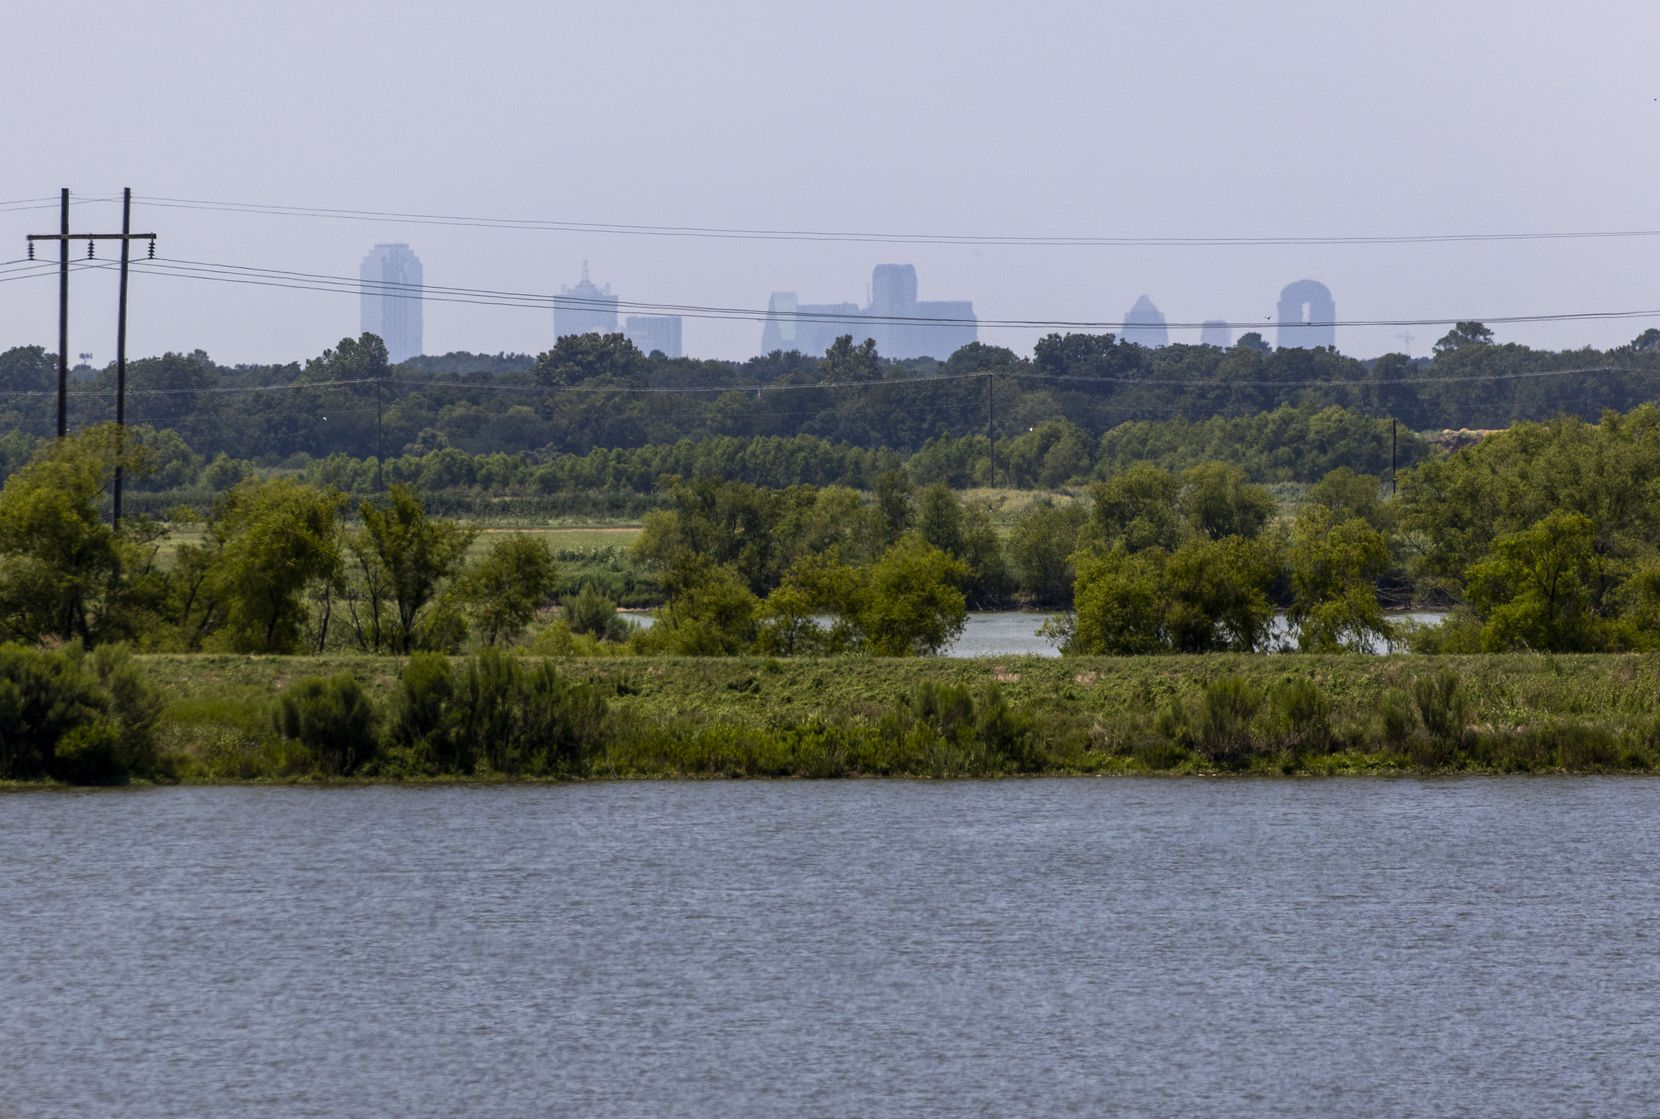 The downtown Dallas skyline is visible from the levee at Dallas Water Utilities' Southside Wastewater Treatment Plant, which sits a few miles from Sandbranch.